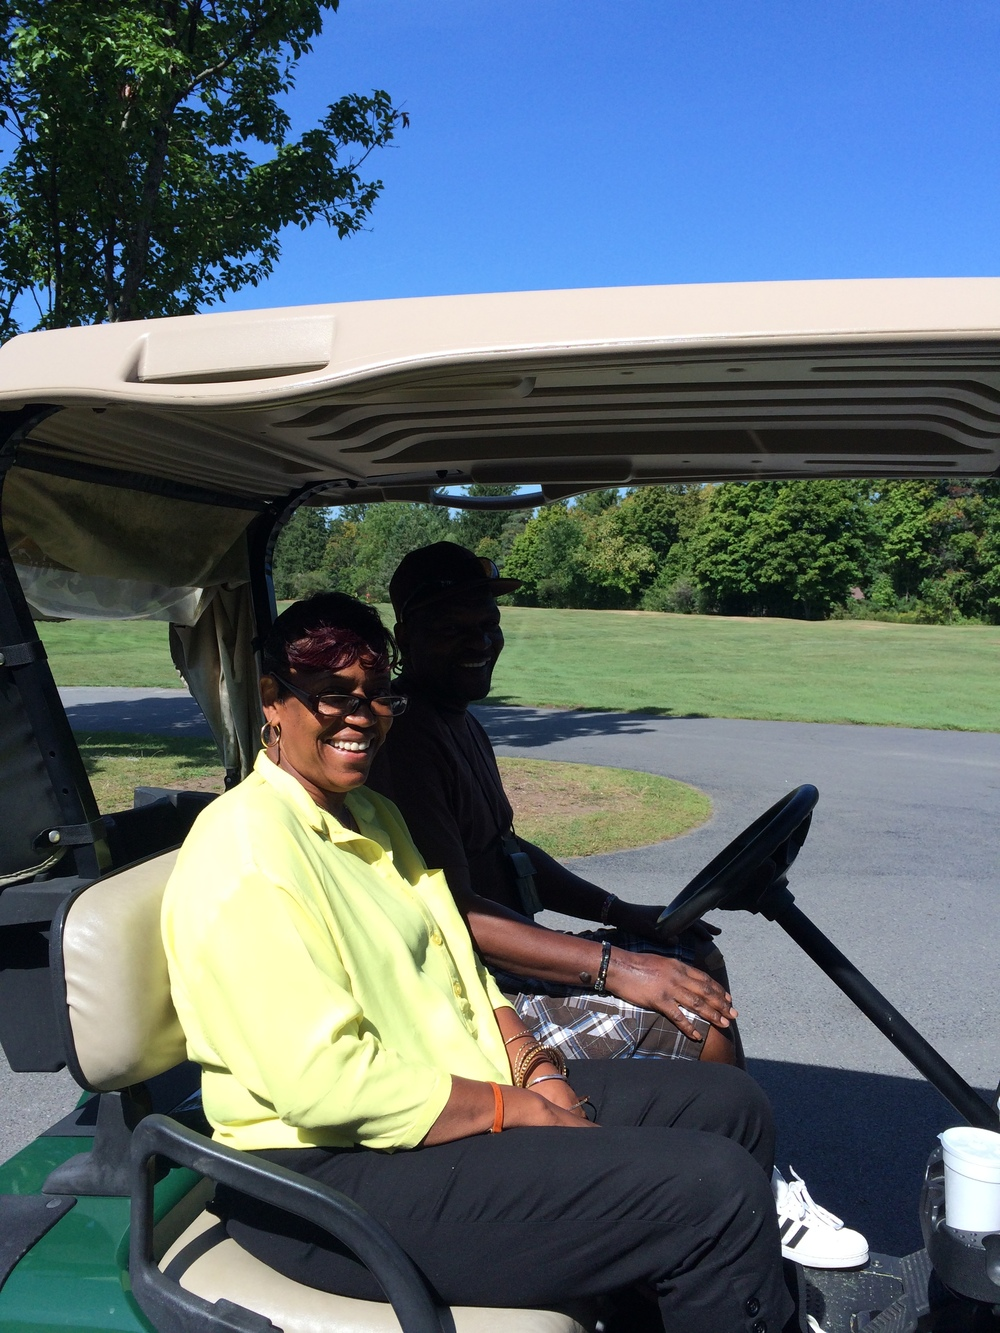 CHARLES AND BETTIE GRAHAM GREET THE GOLFERS AT CAZENOVIA GOLF CLUB ON 9/16/15